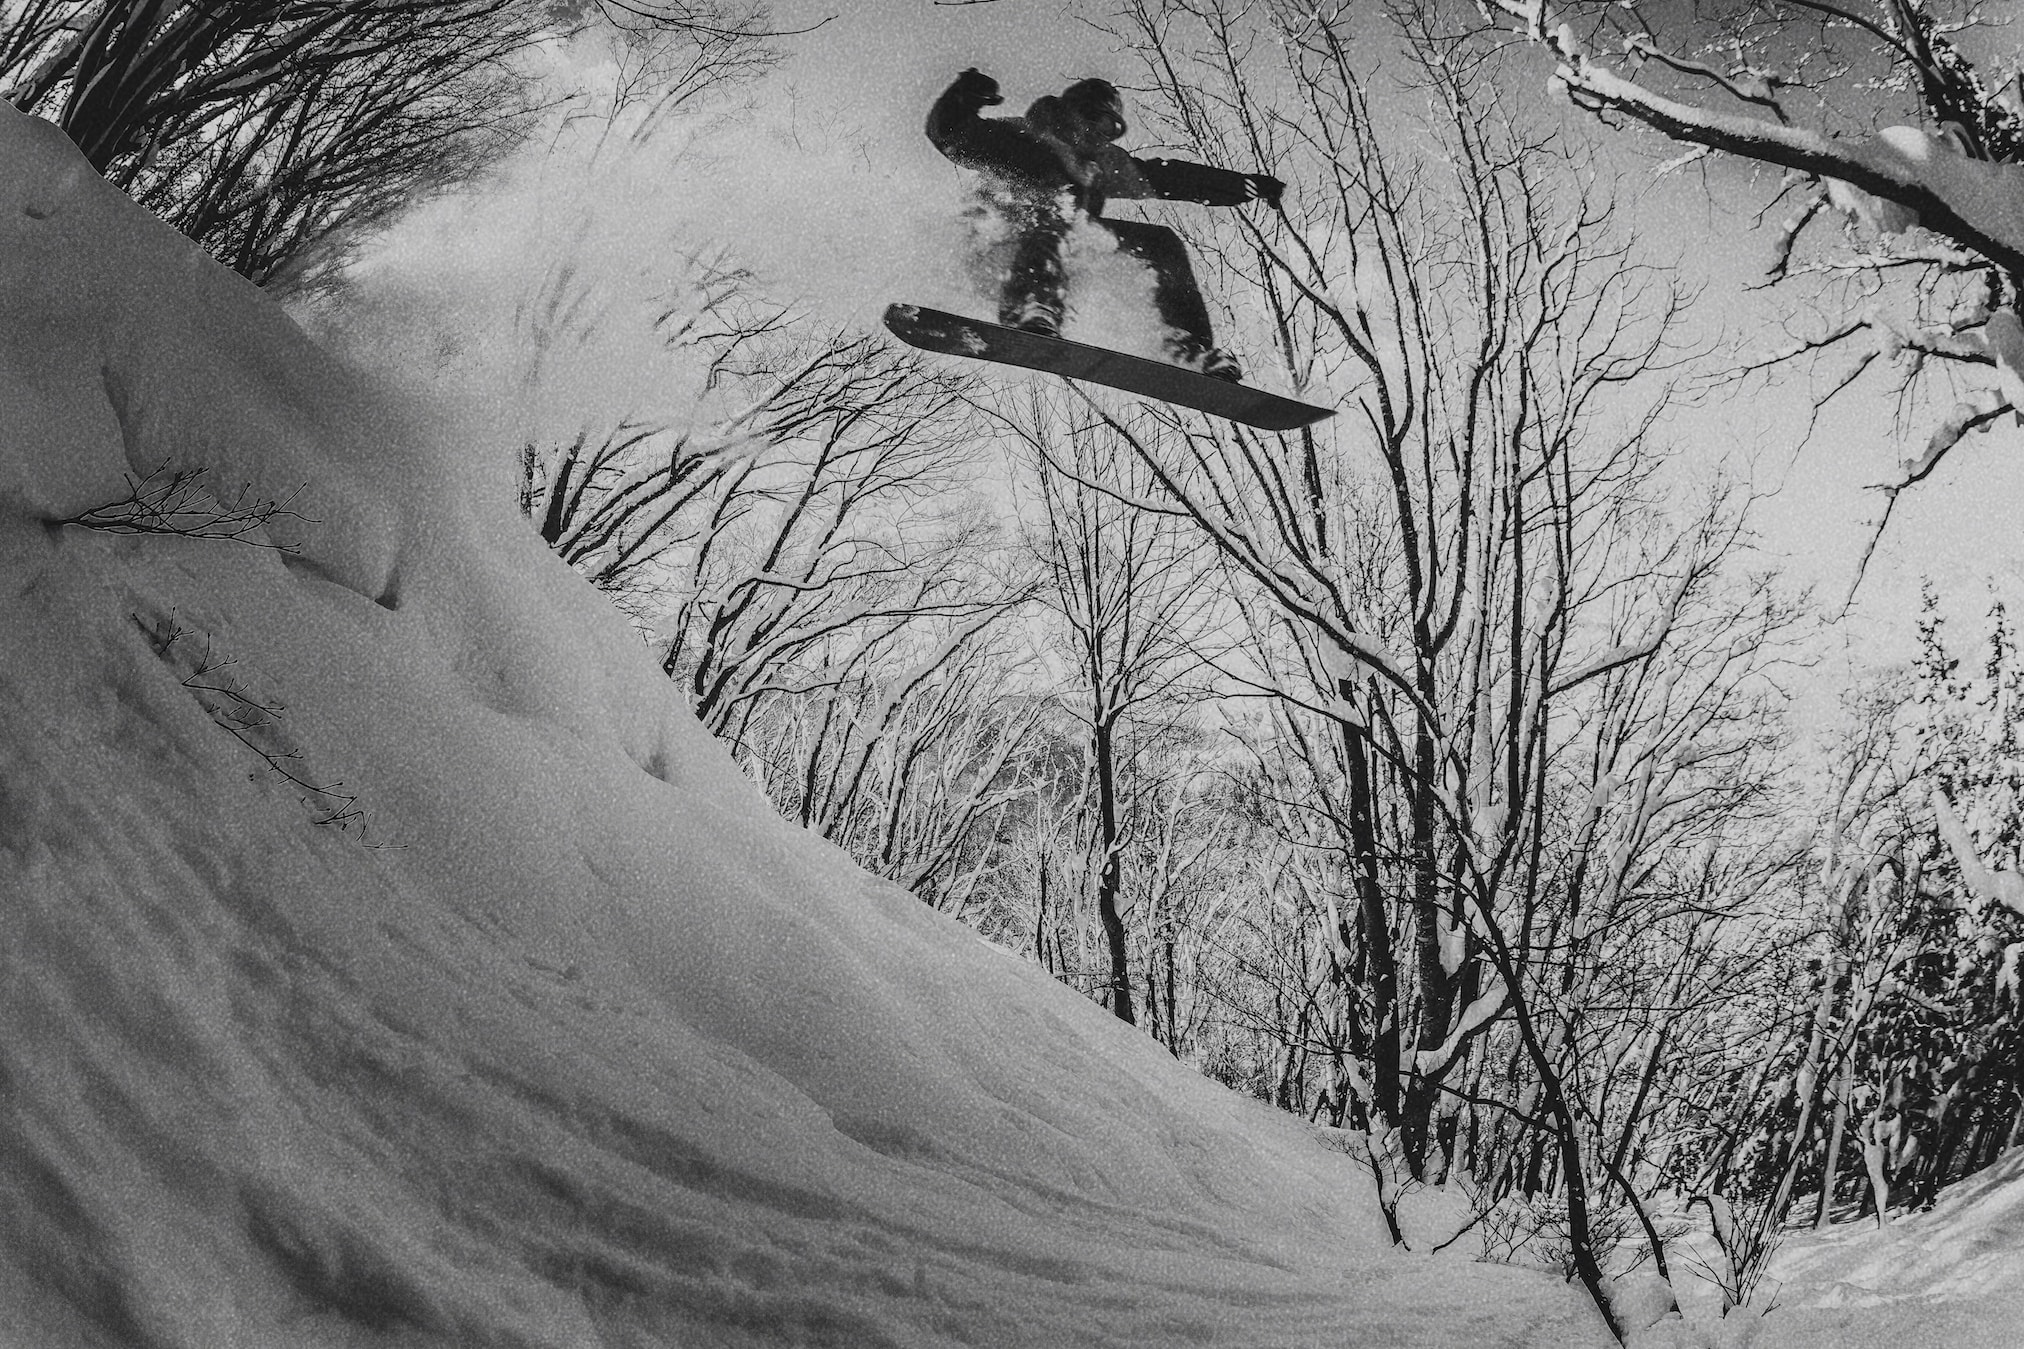 Snowboard jump in Nozawa Onsen during Powder Culture Tour with First Tours